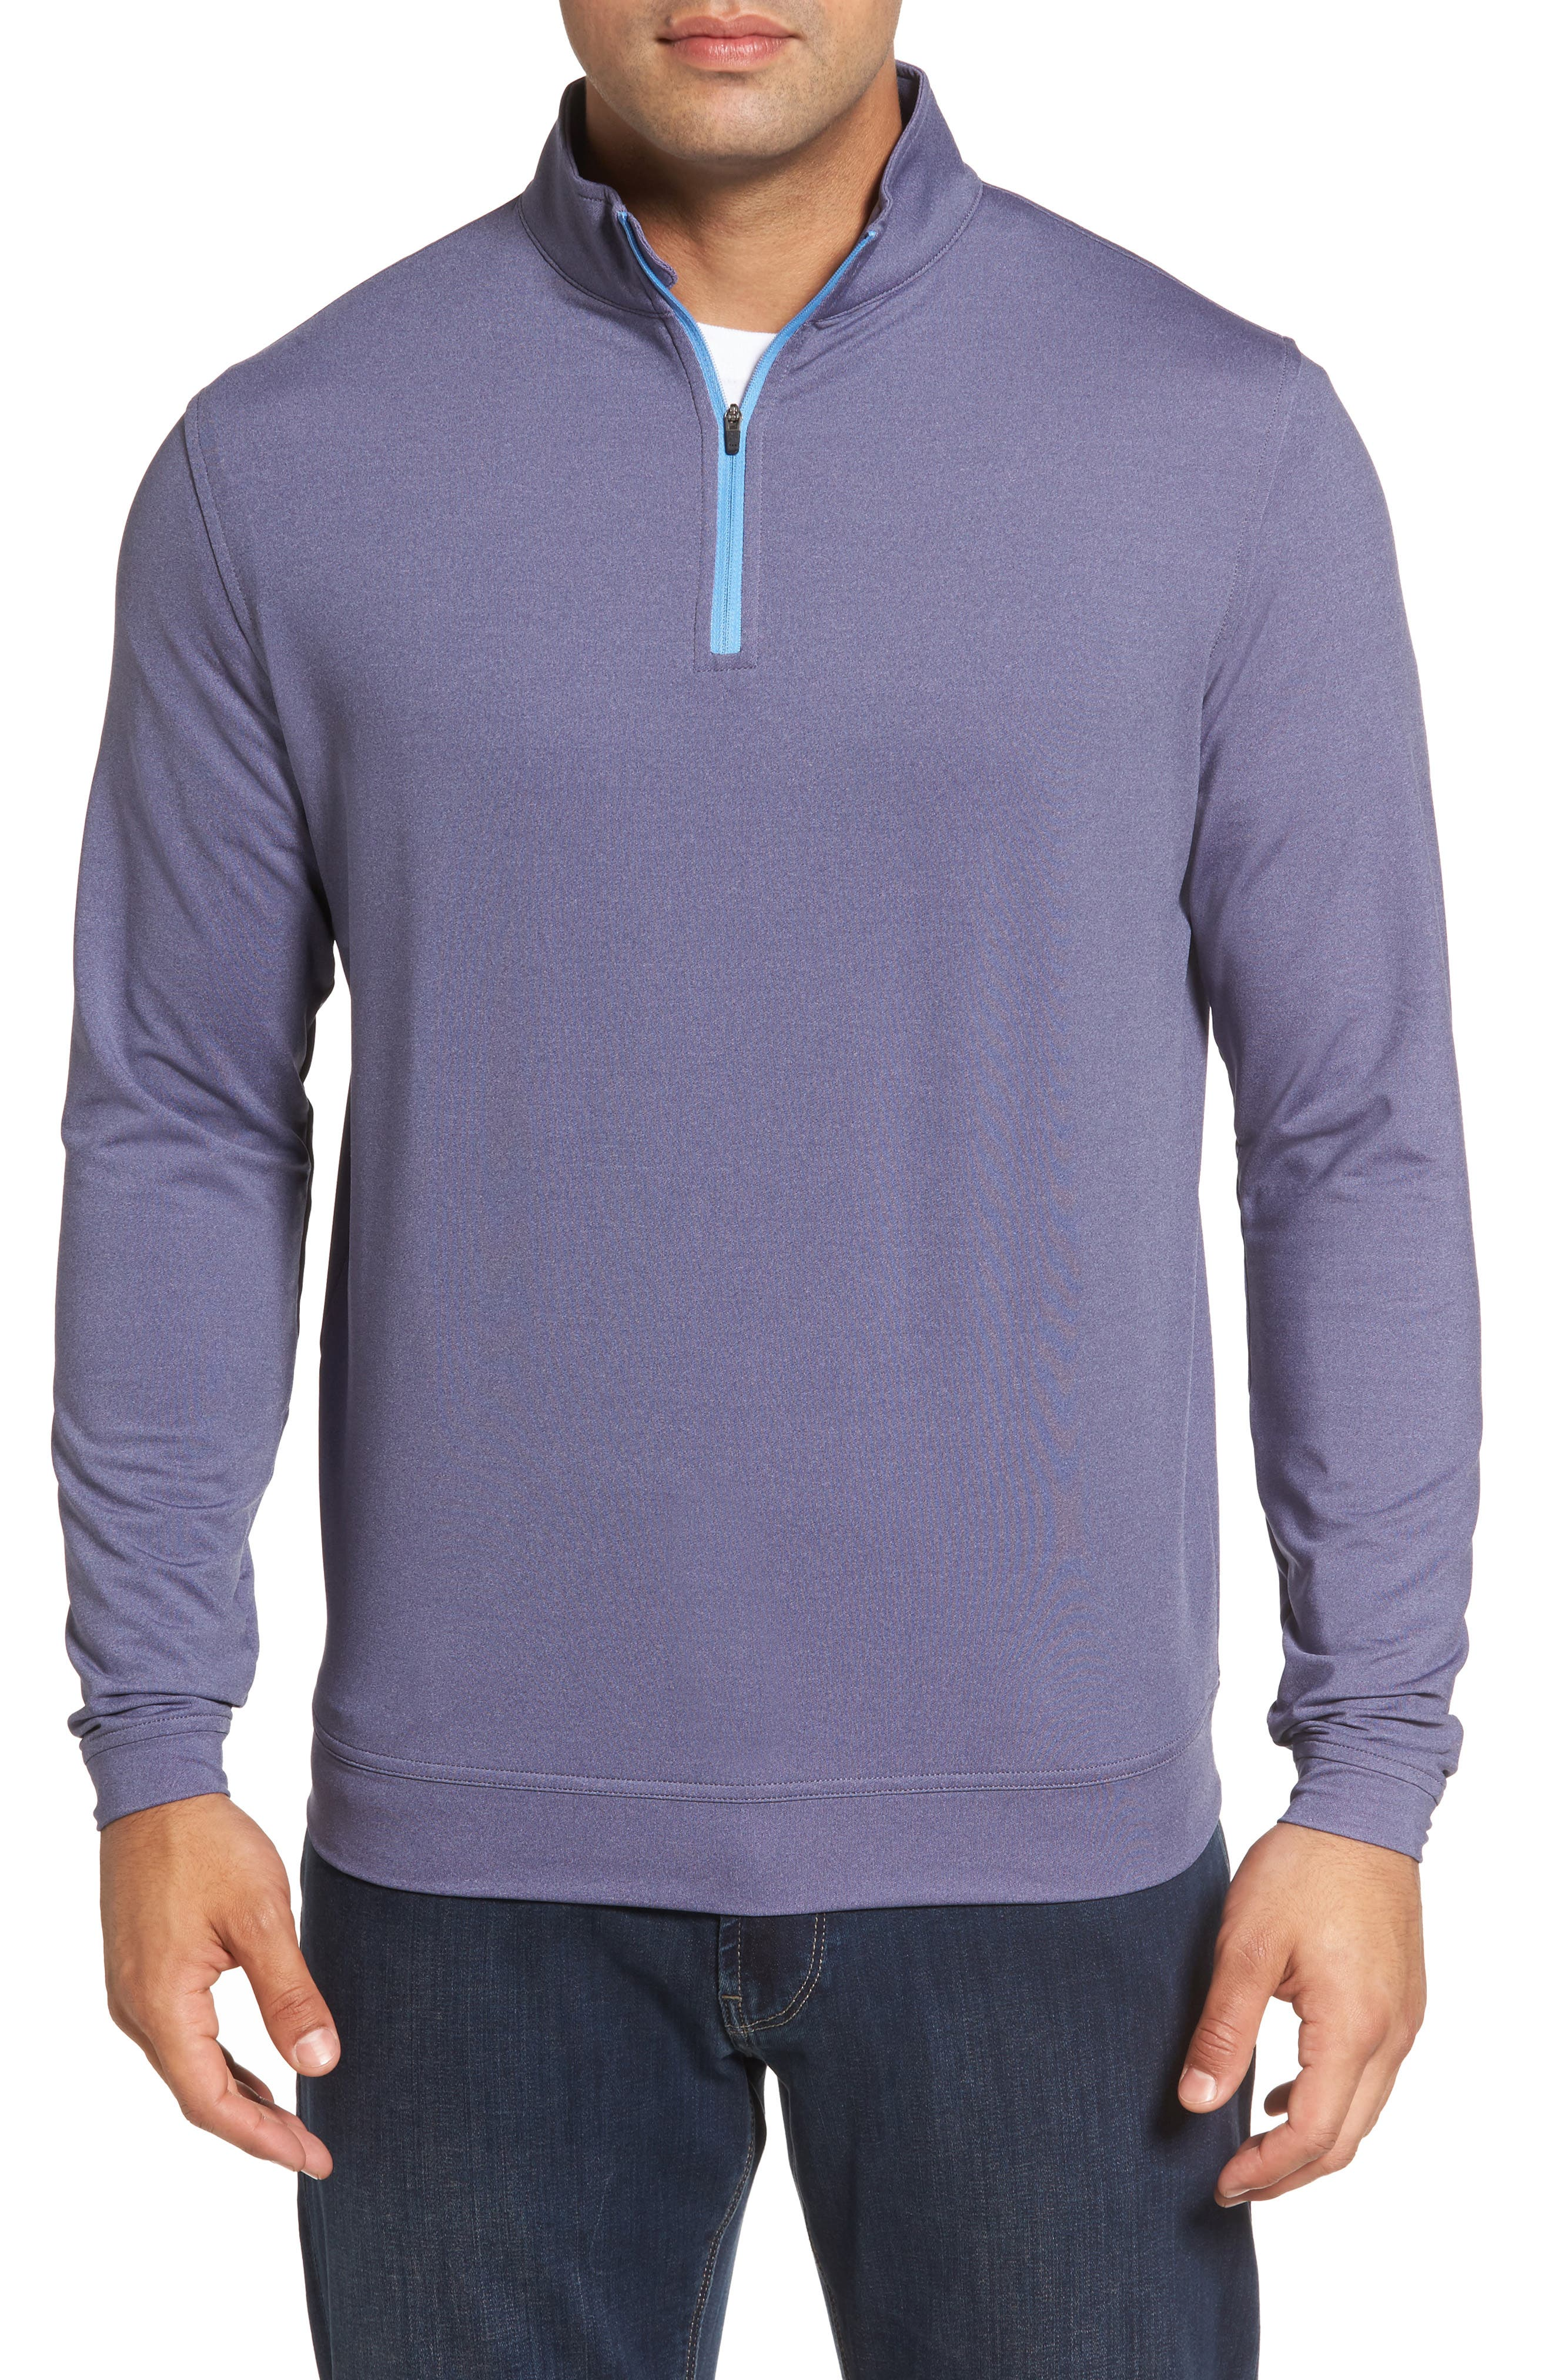 Peter Millar Perth Quarter Zip Stretch Pullover